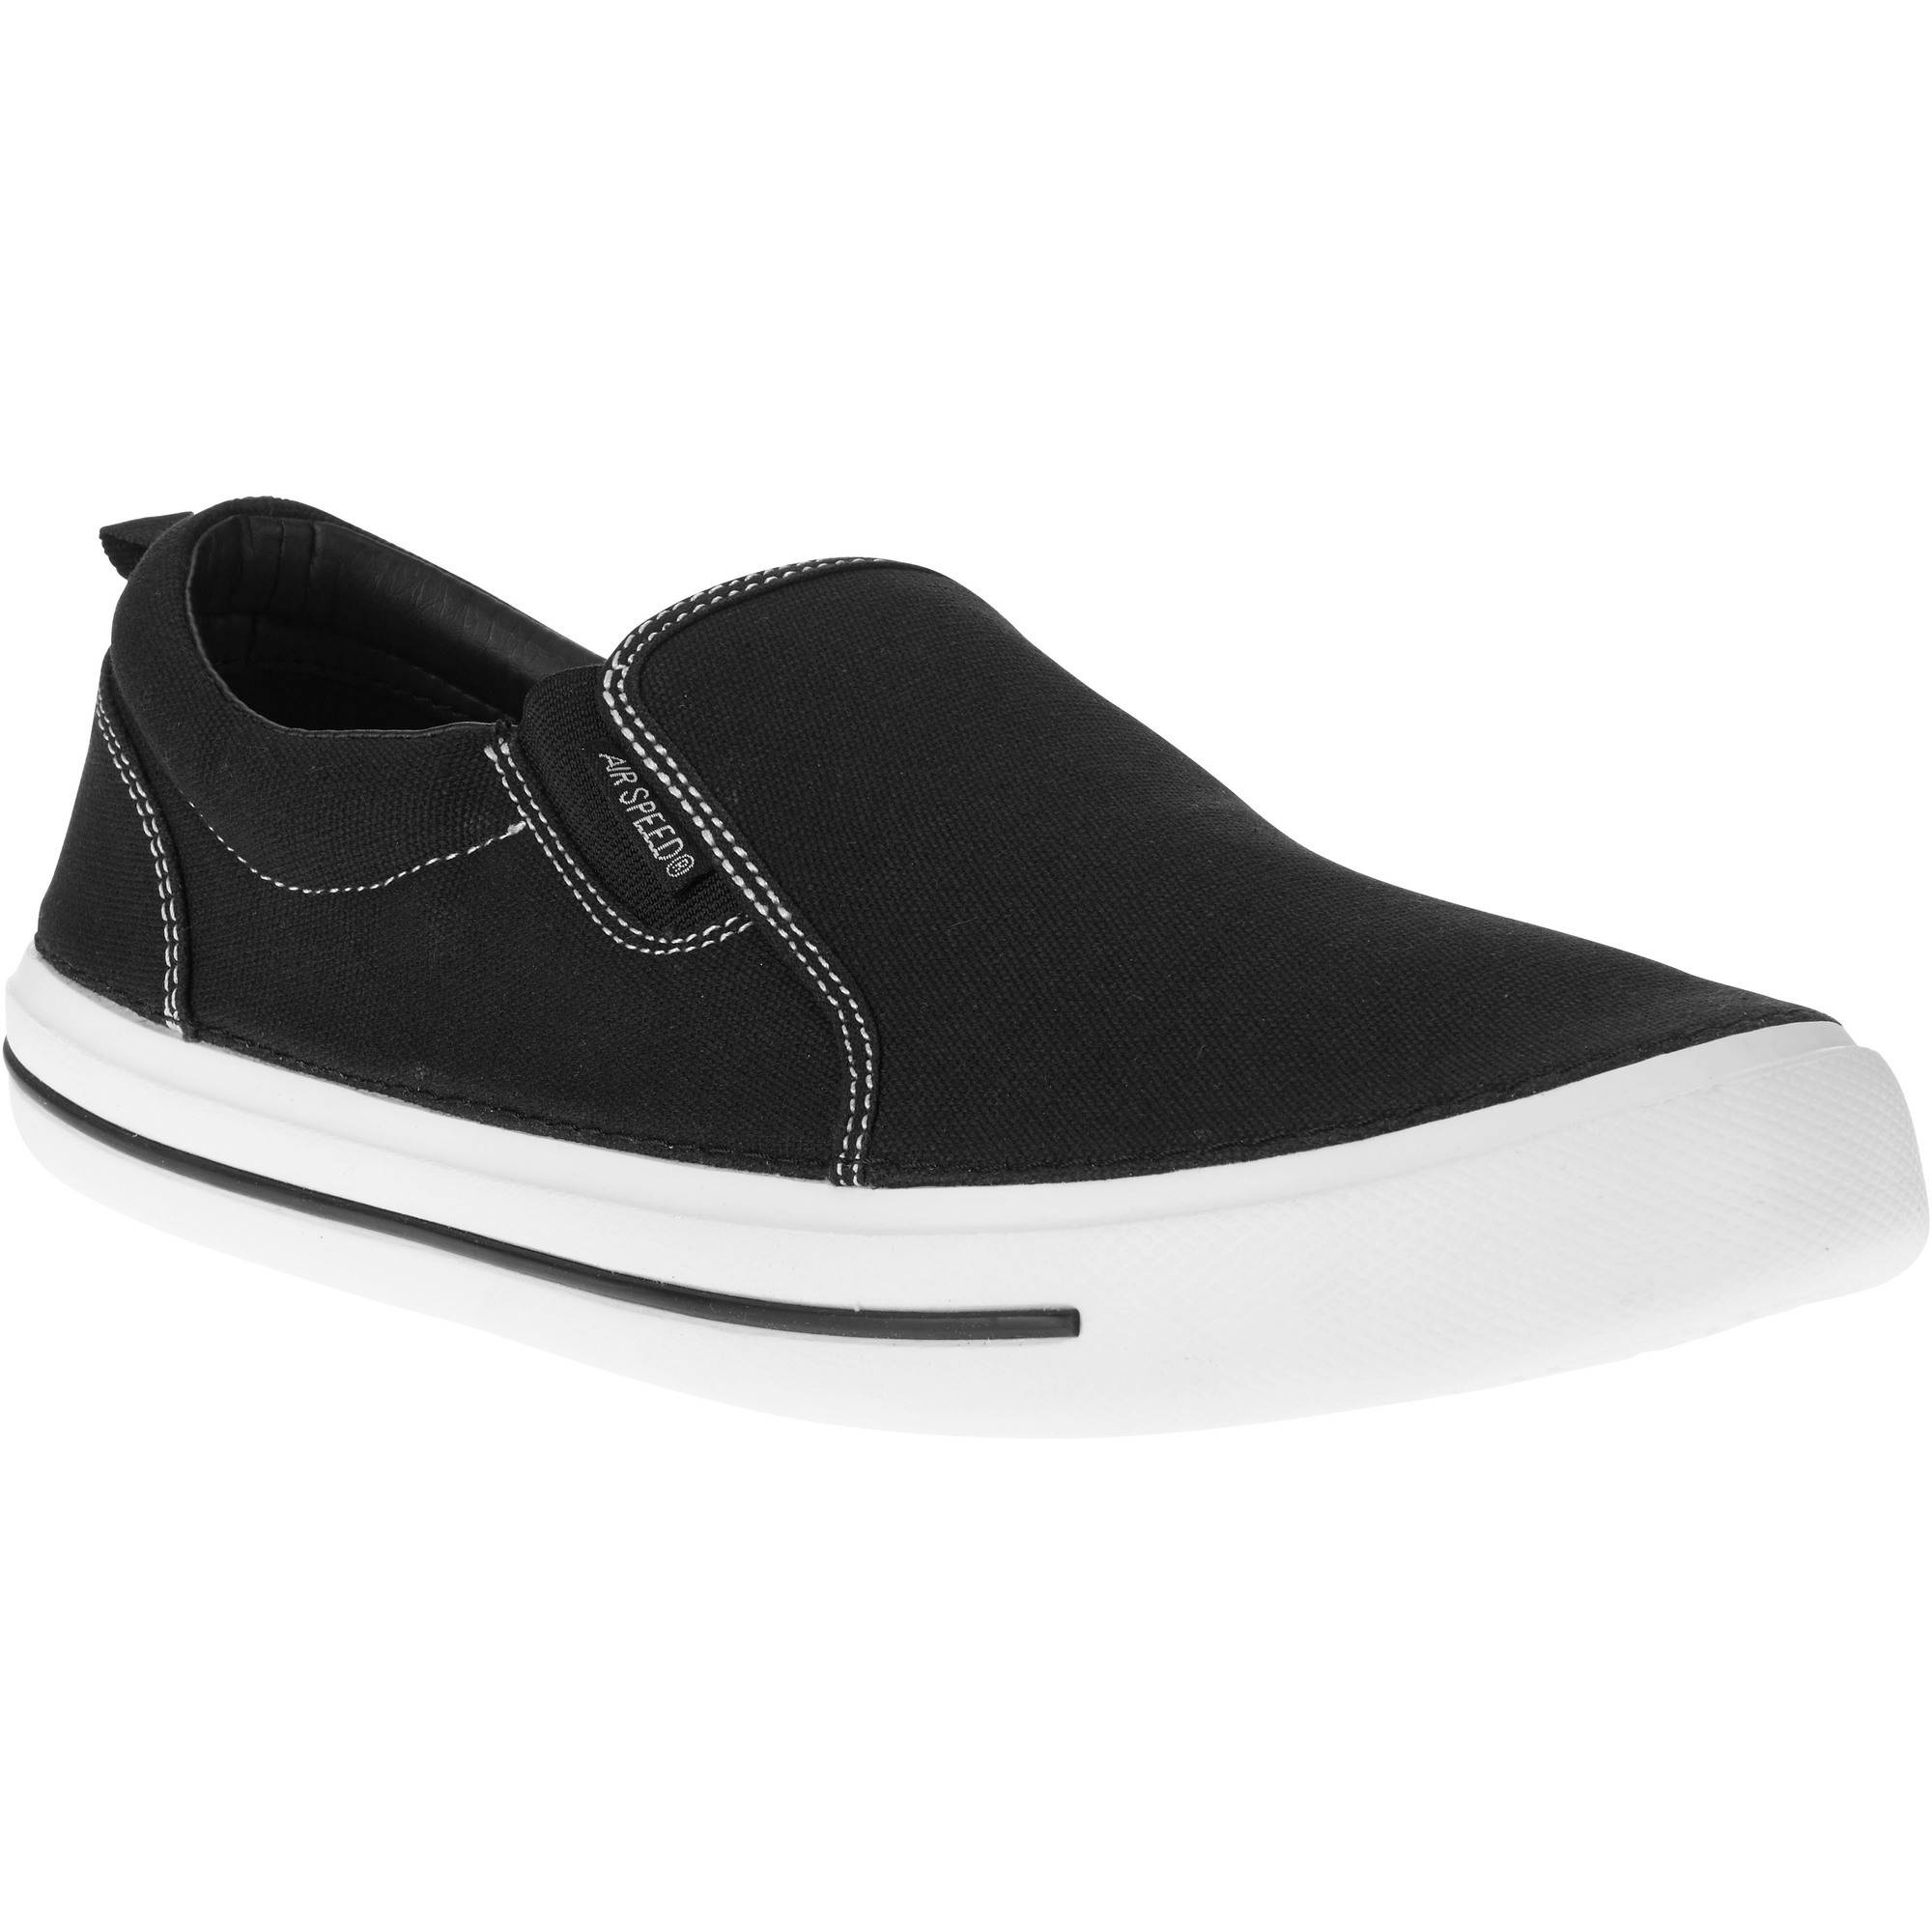 White Canvas Slip On Shoes Walmart